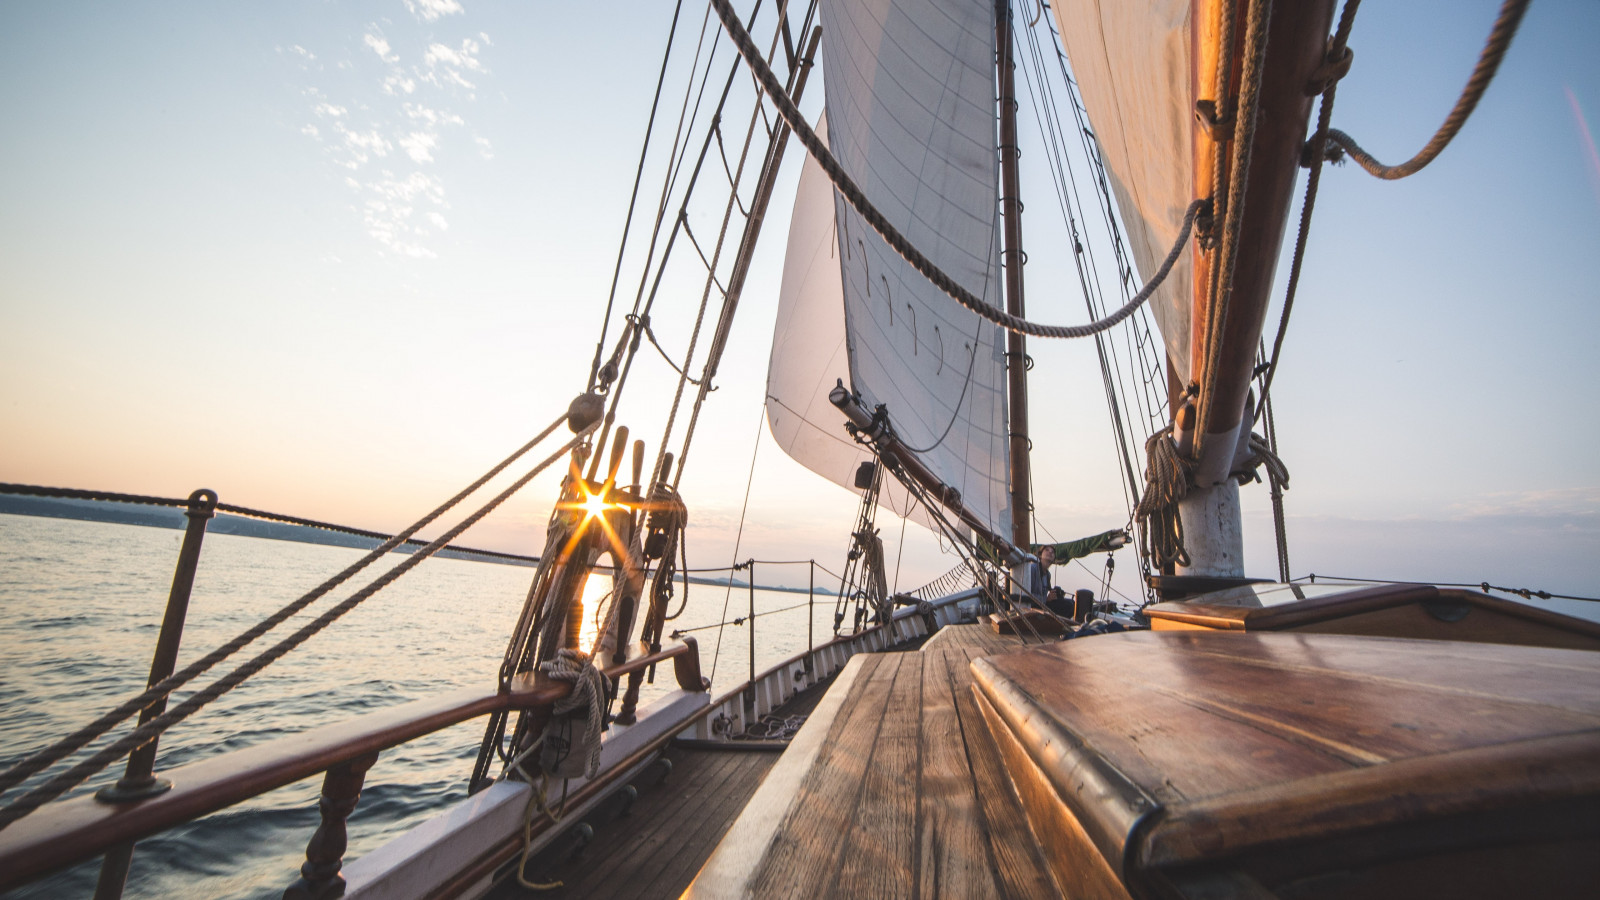 Sailing adventure wallpaper 1600x900